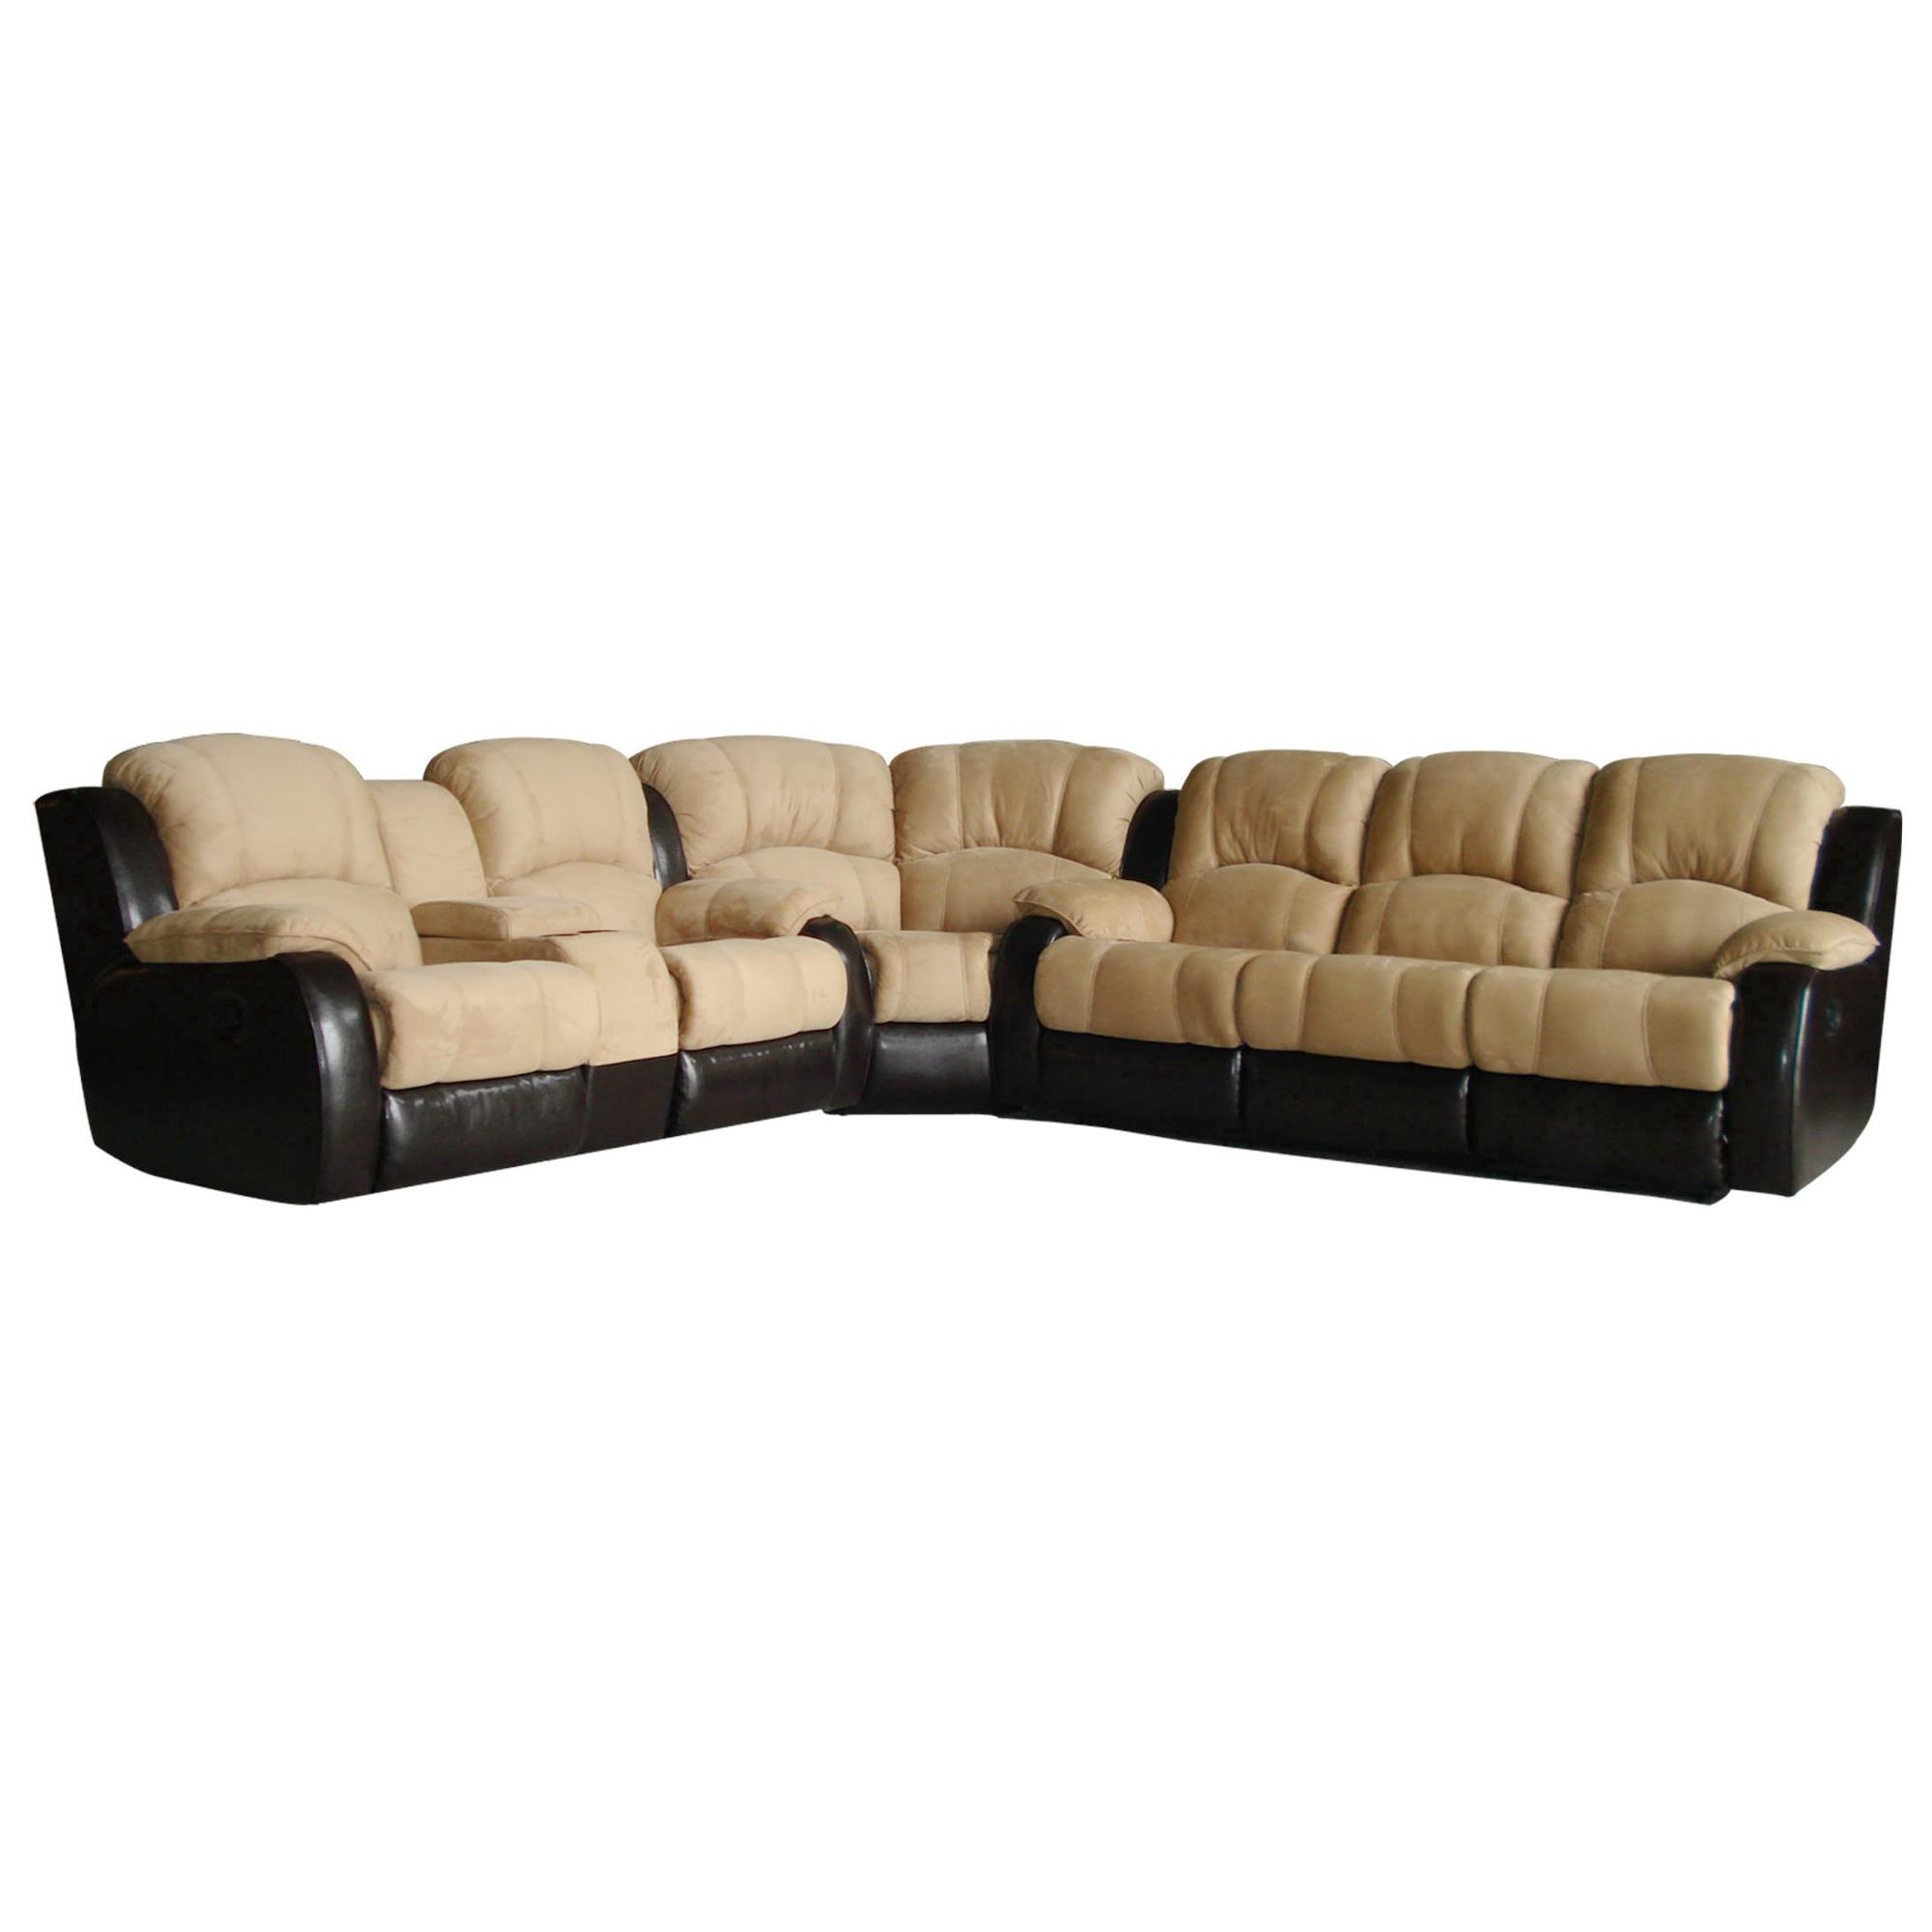 Picture of: Hot Sale Modern Style 7 Seat Leather Sofa Set Sectional Leather And Fabric Sofa Recliner Buy Leather Recliner Sofa Recliner Kuka Leather Sofa High Quality Sofa Product On Alibaba Com